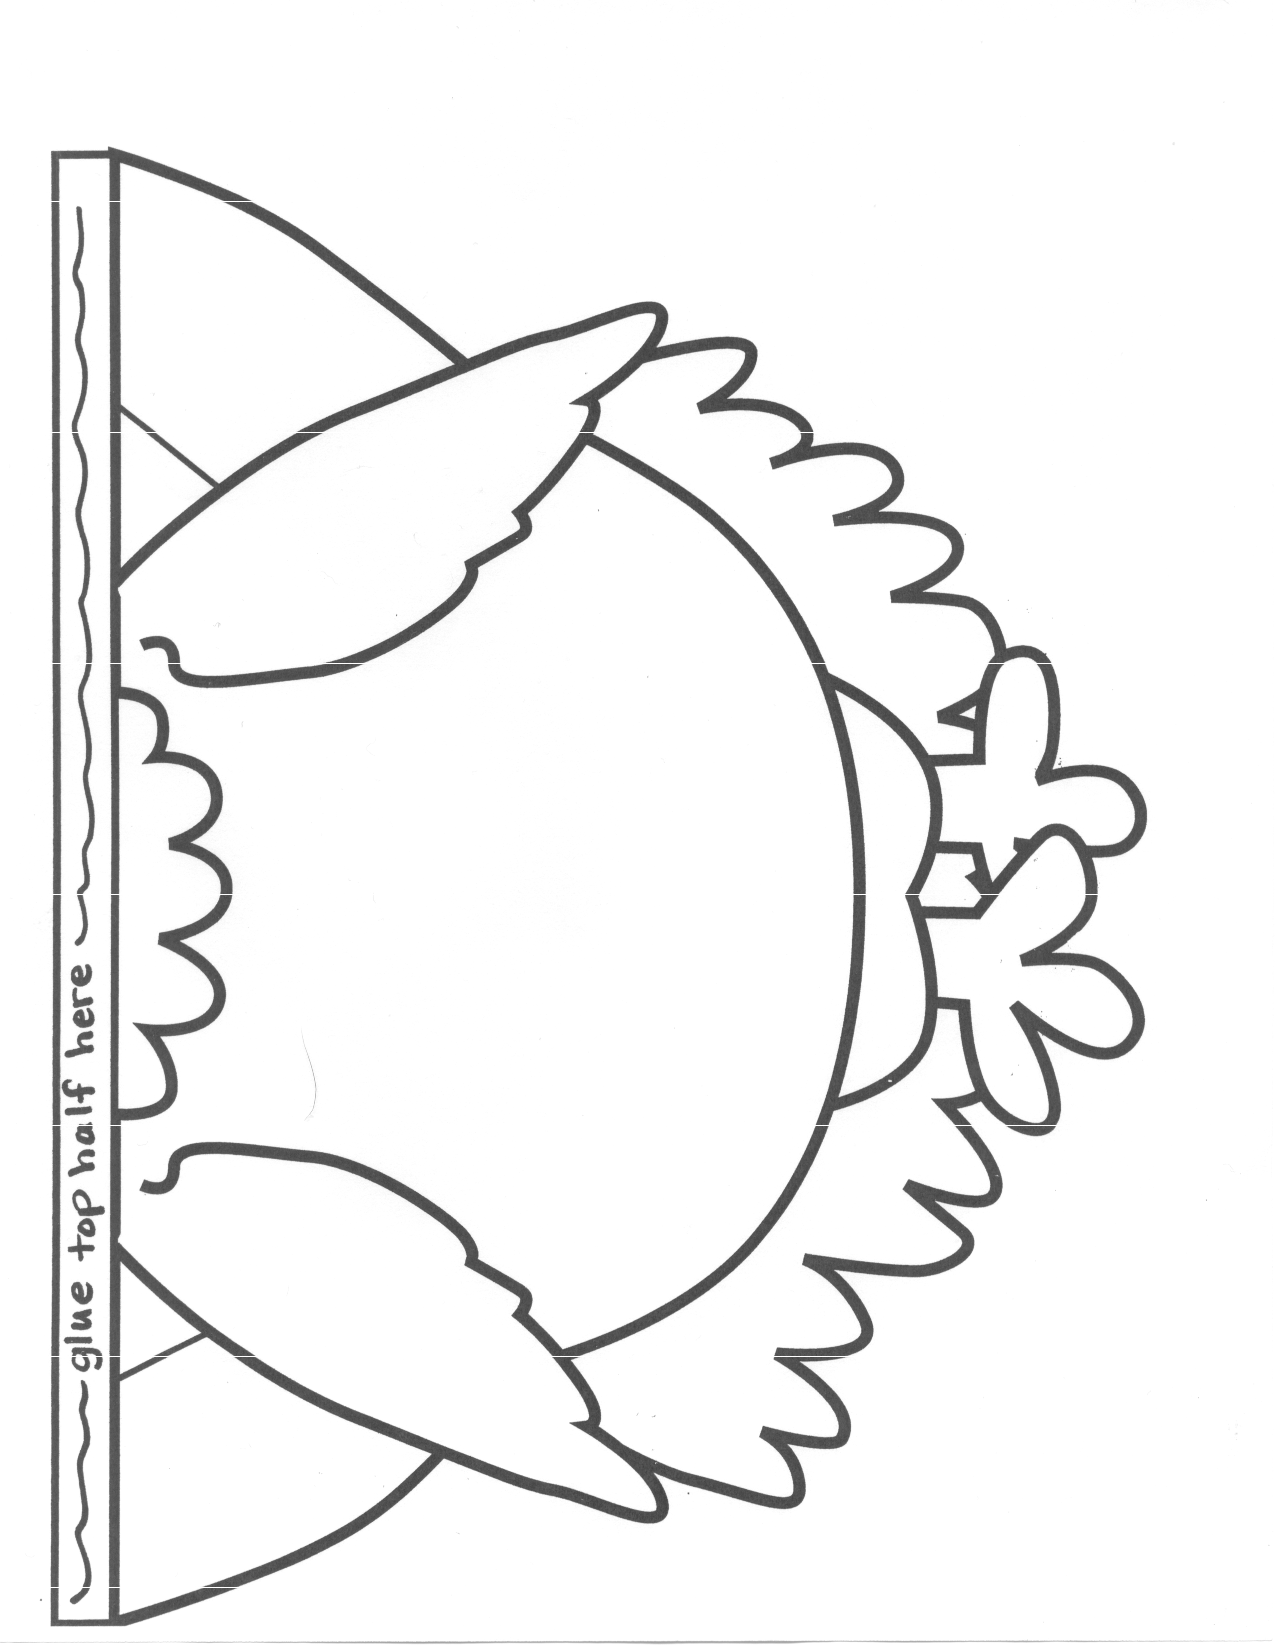 famiily turkey project outline printable scope of work